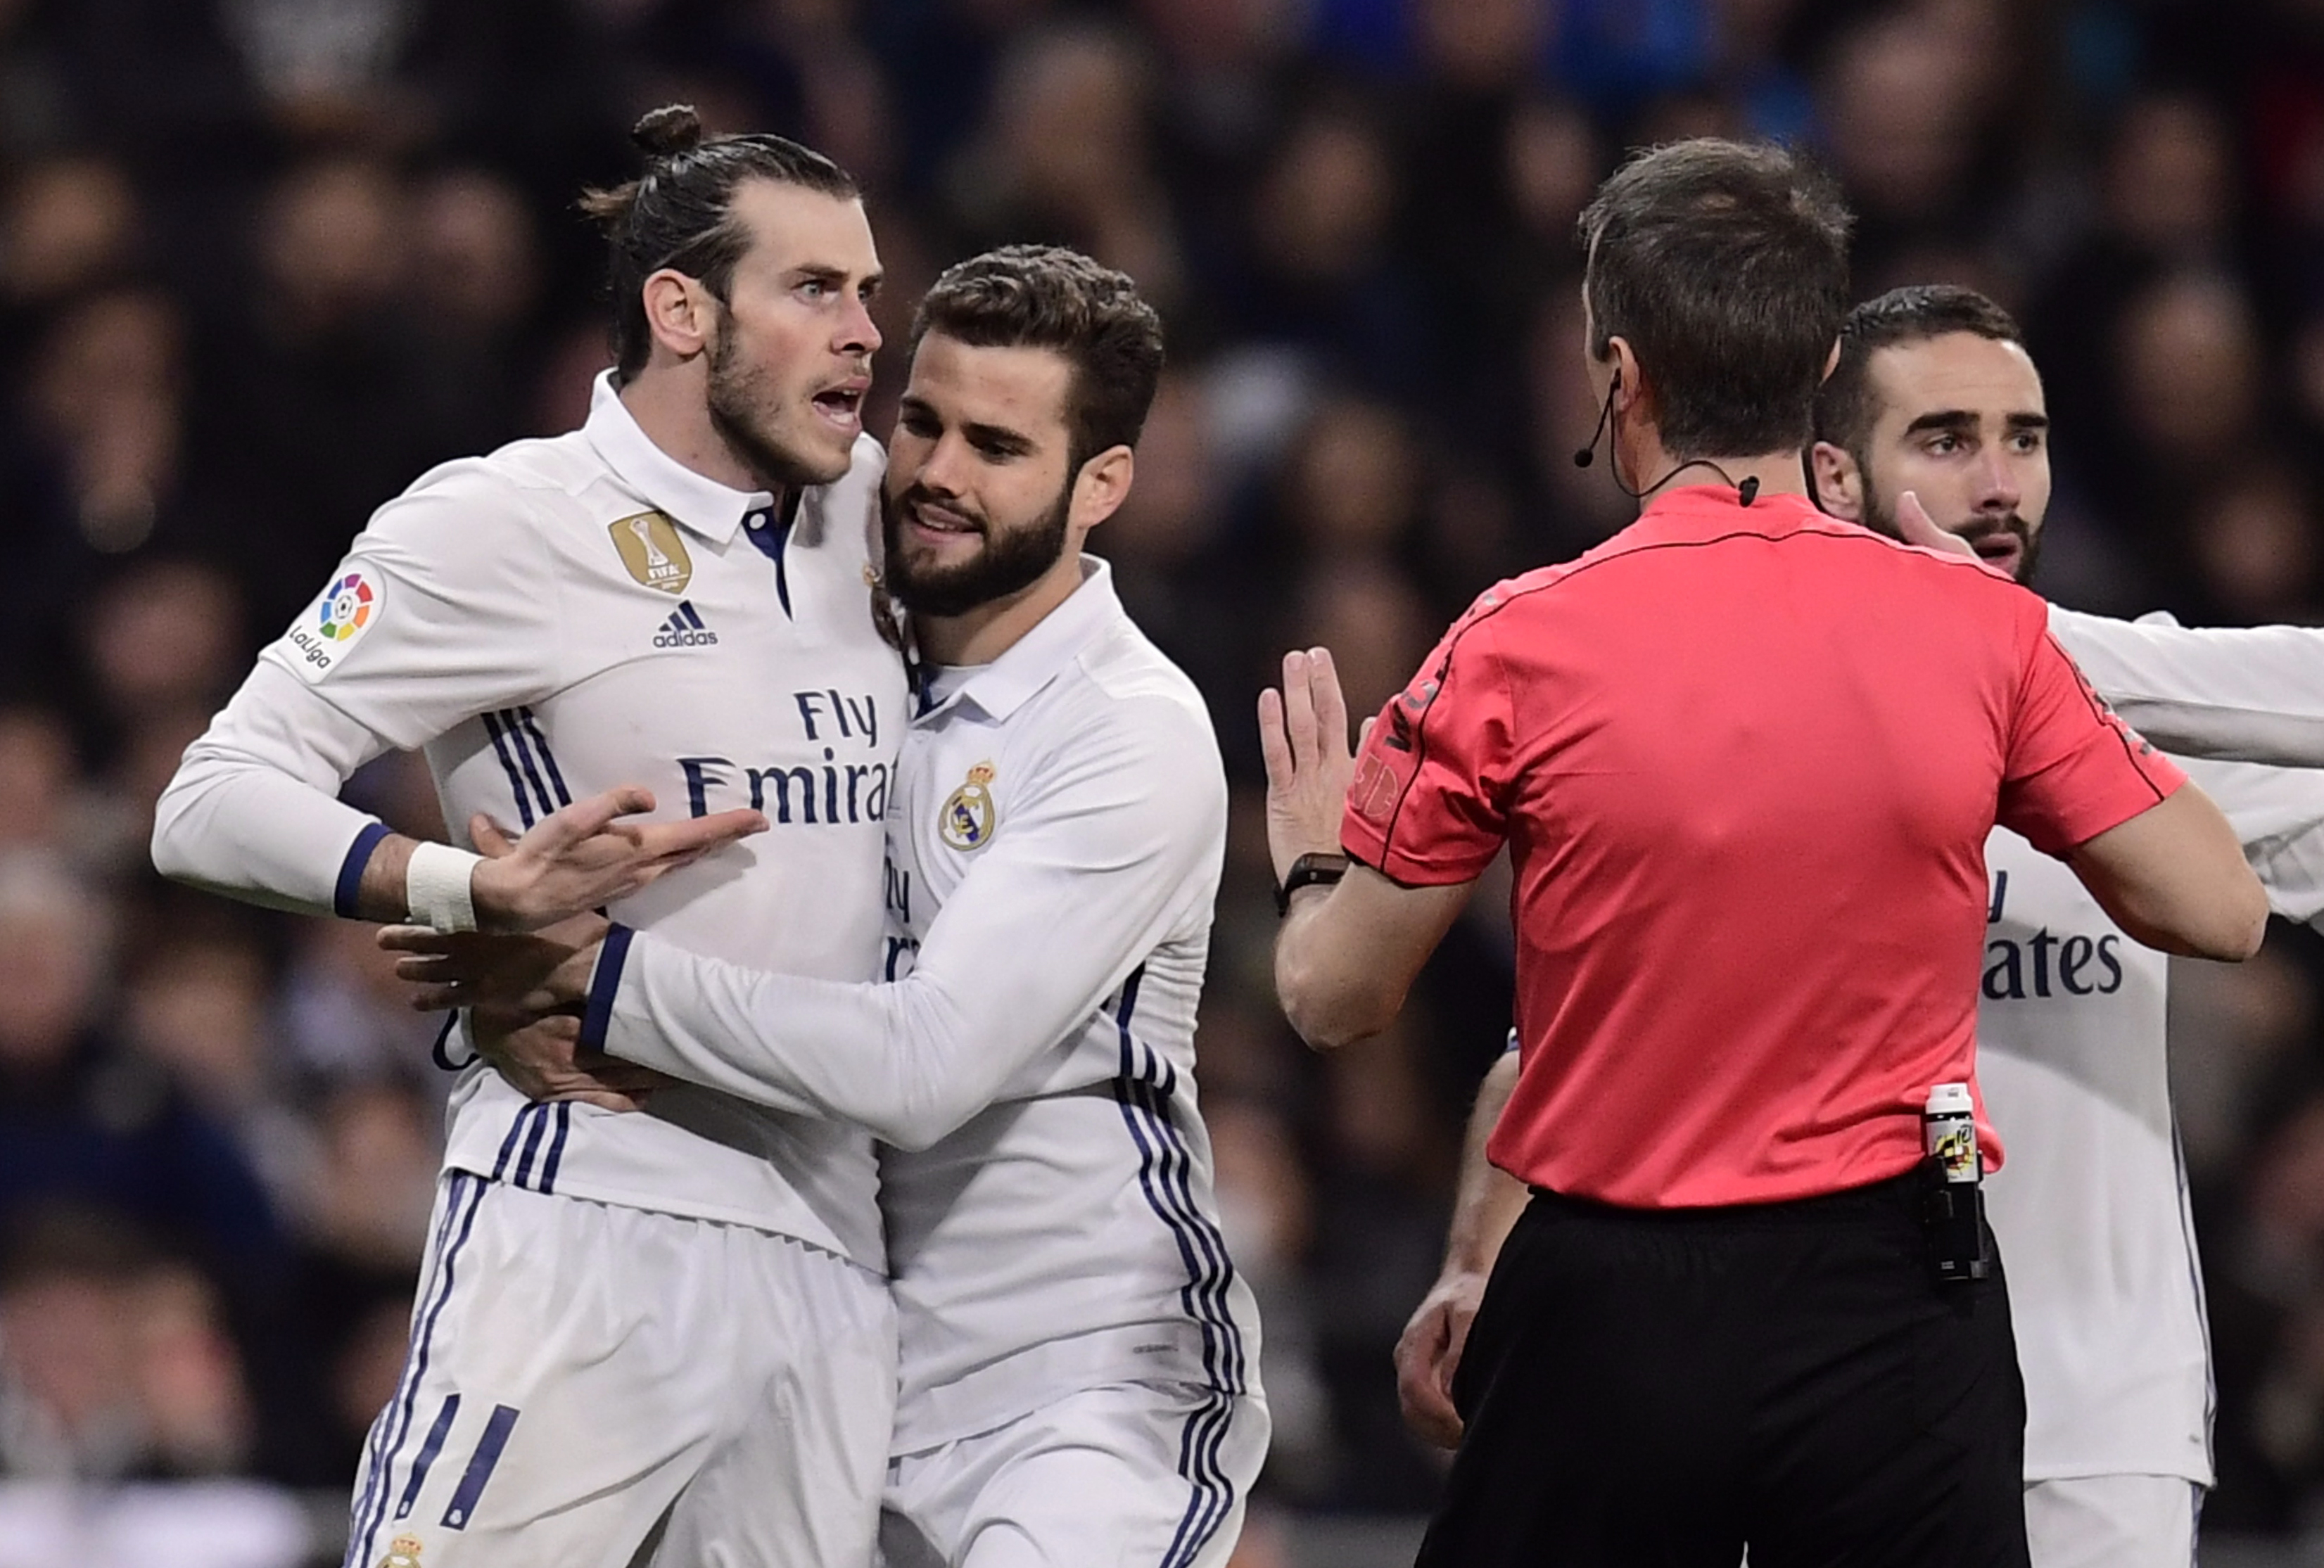 Gareth Bale sent off for violent conduct as Real Madrid drop points against Las Palmas